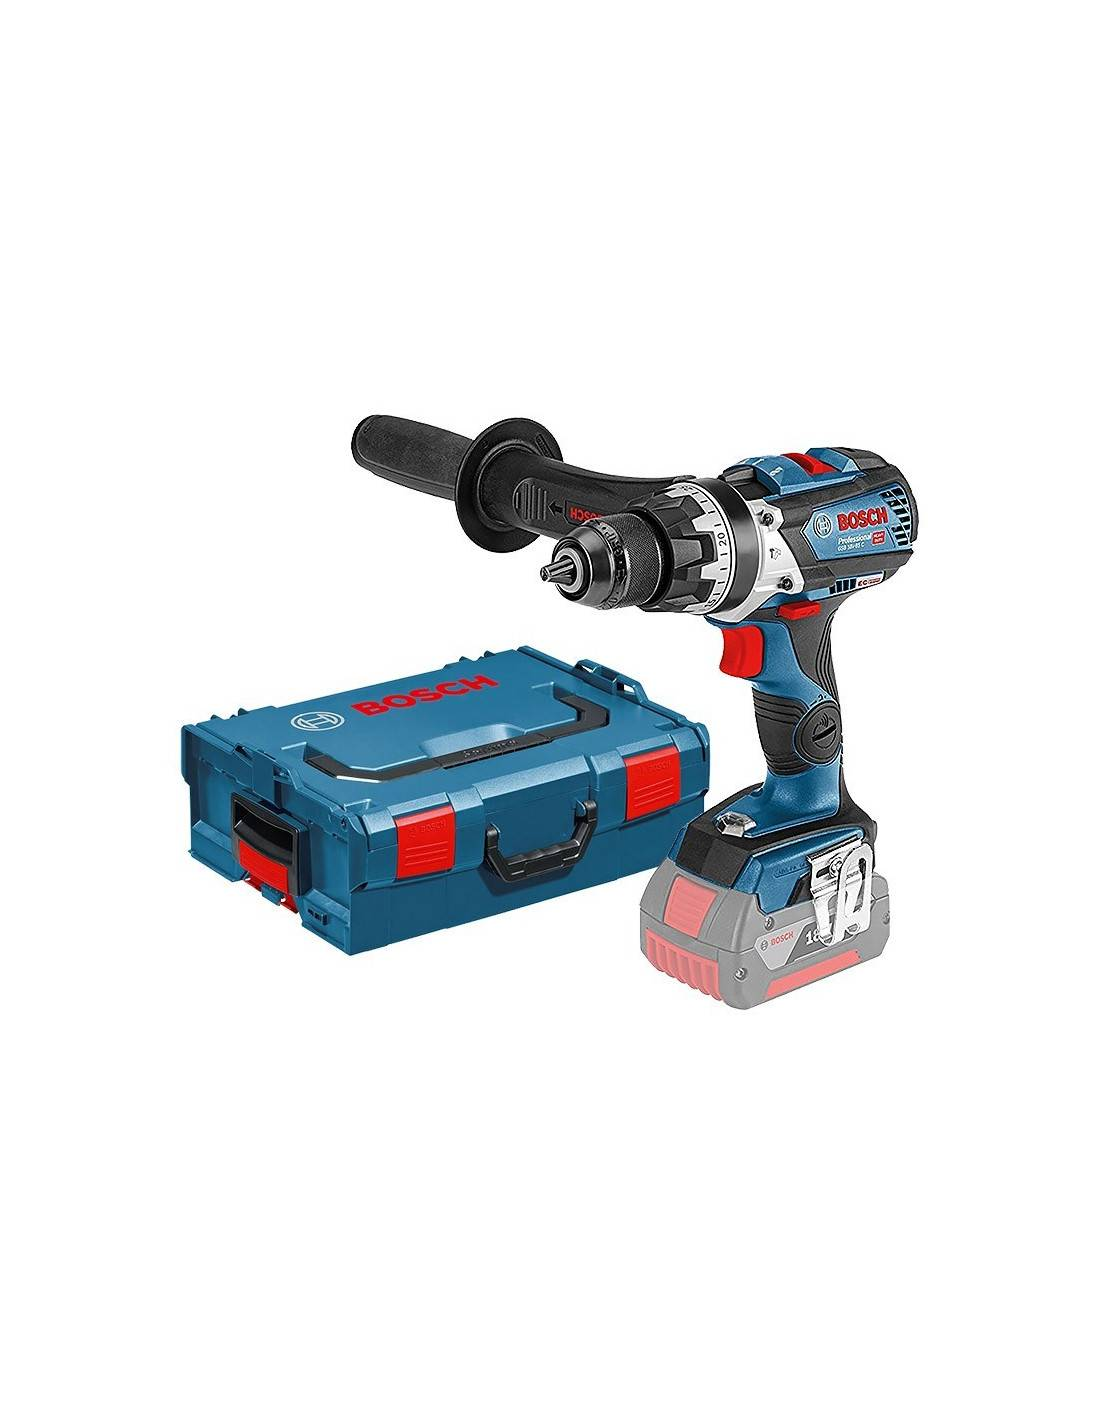 Perceuse visseuse à percussion BOSCH GSB 18V-85 C version solo (machine seule) en coffret L-BOXX 06019G0302